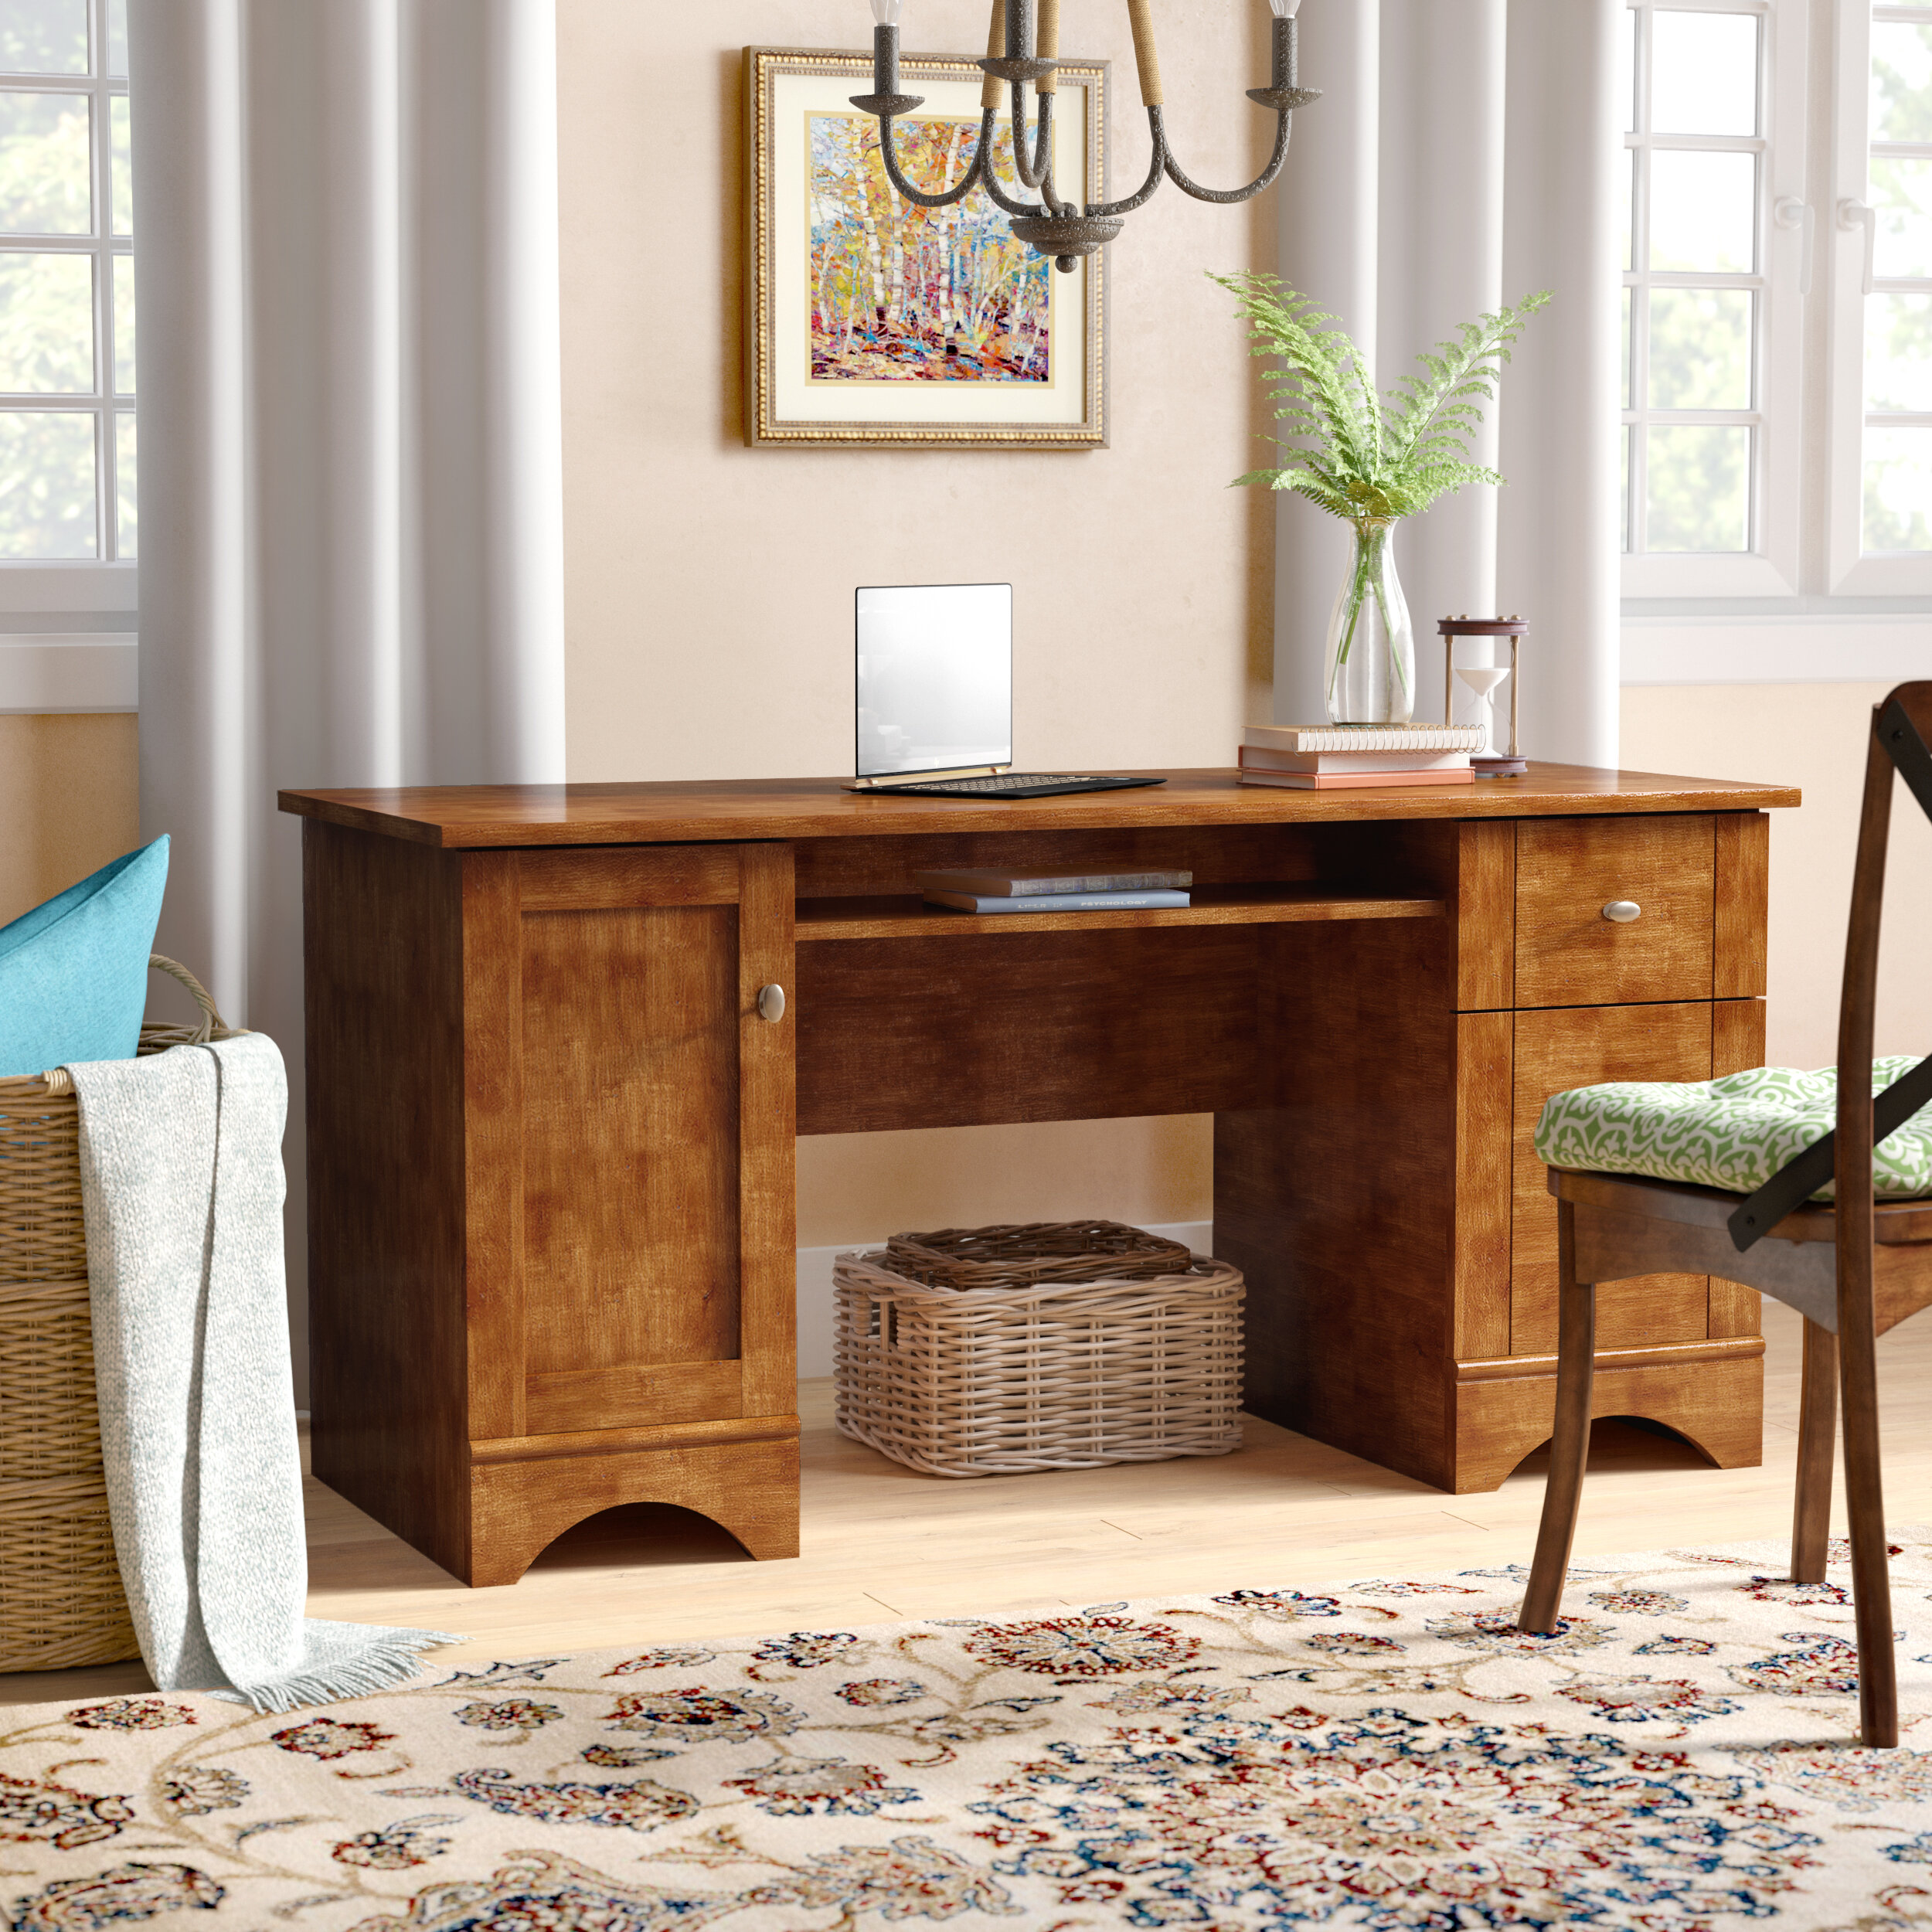 darby home co chamberland 2 drawer computer desk reviews wayfair rh wayfair com home computer desk and chair home computer desk setup